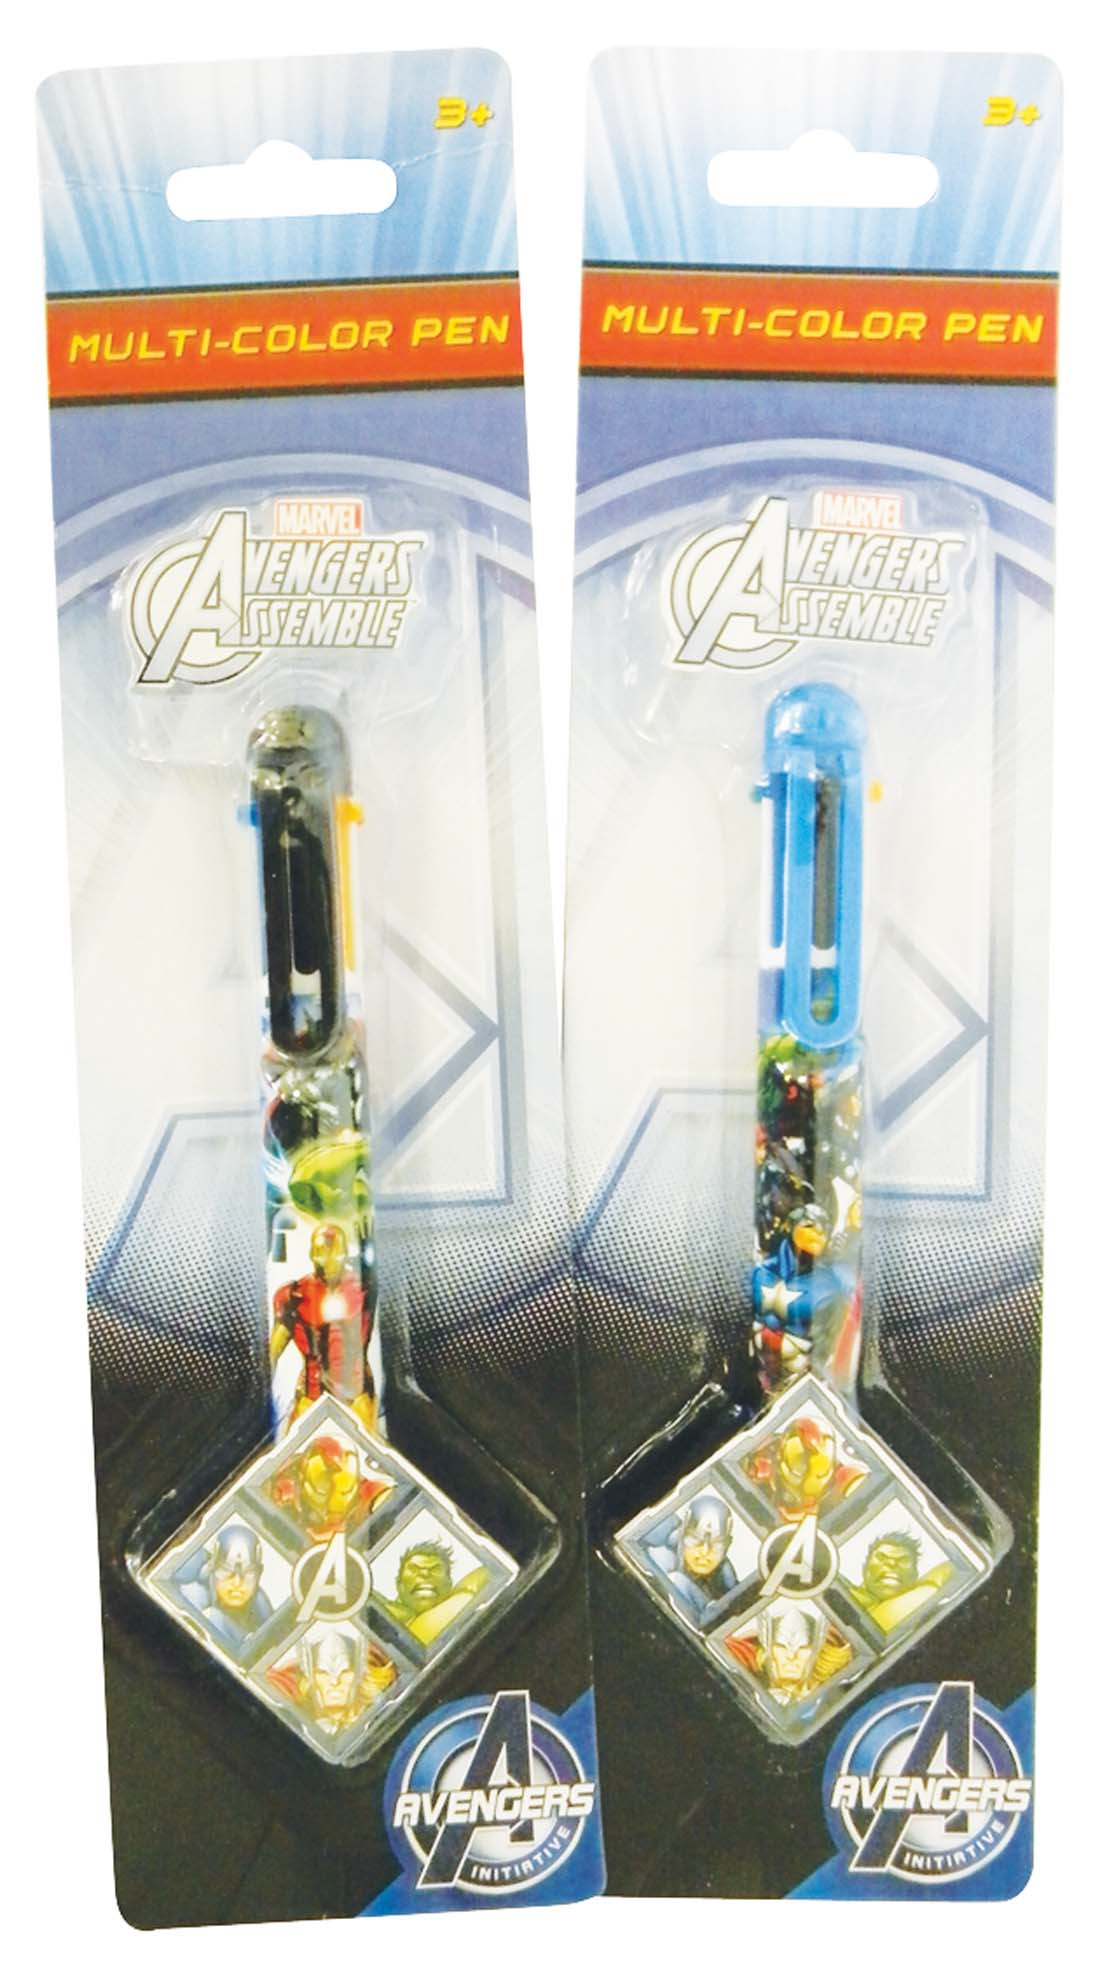 View AVENGERS MULTI-COLOR PEN 6 COLOR INKS 2 ASSORTED STYLES